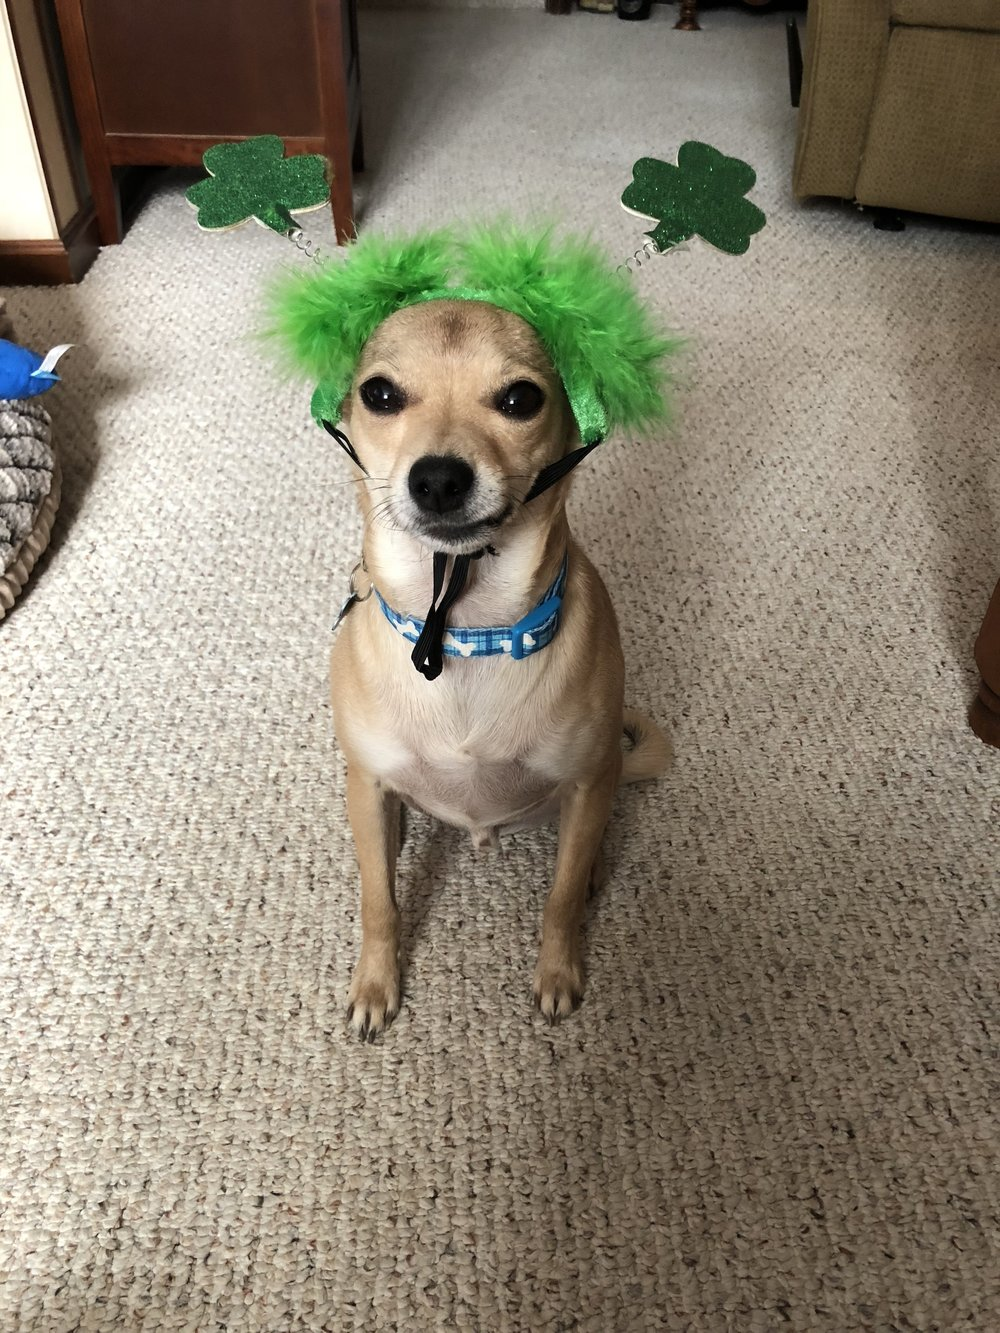 Cooper is all ready for St. Patrick's Day!  Be sure to check out what he purchased below!